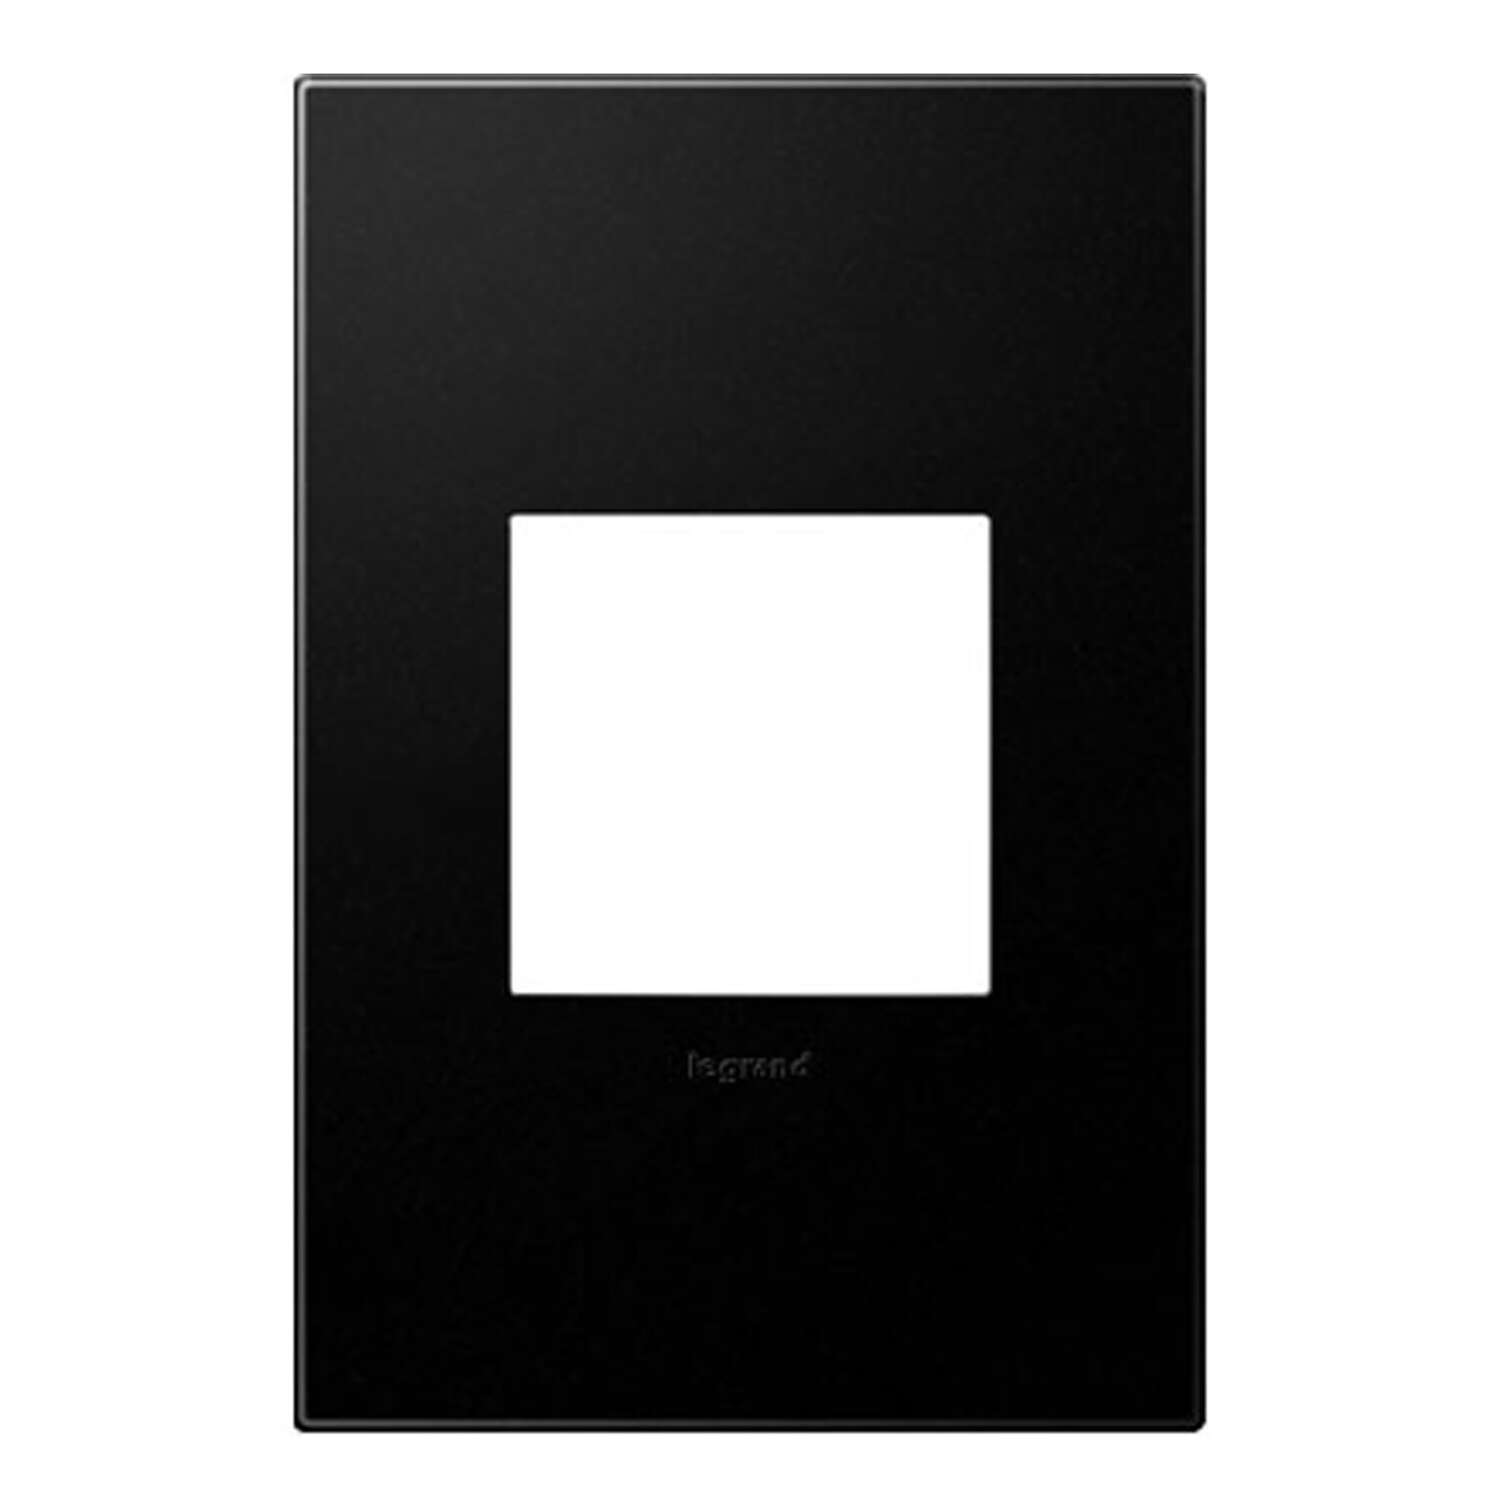 Legrand  Adorne  Graphite  1 gang Polycarbonate  Toggle  Screwless Wall Plate  1 each